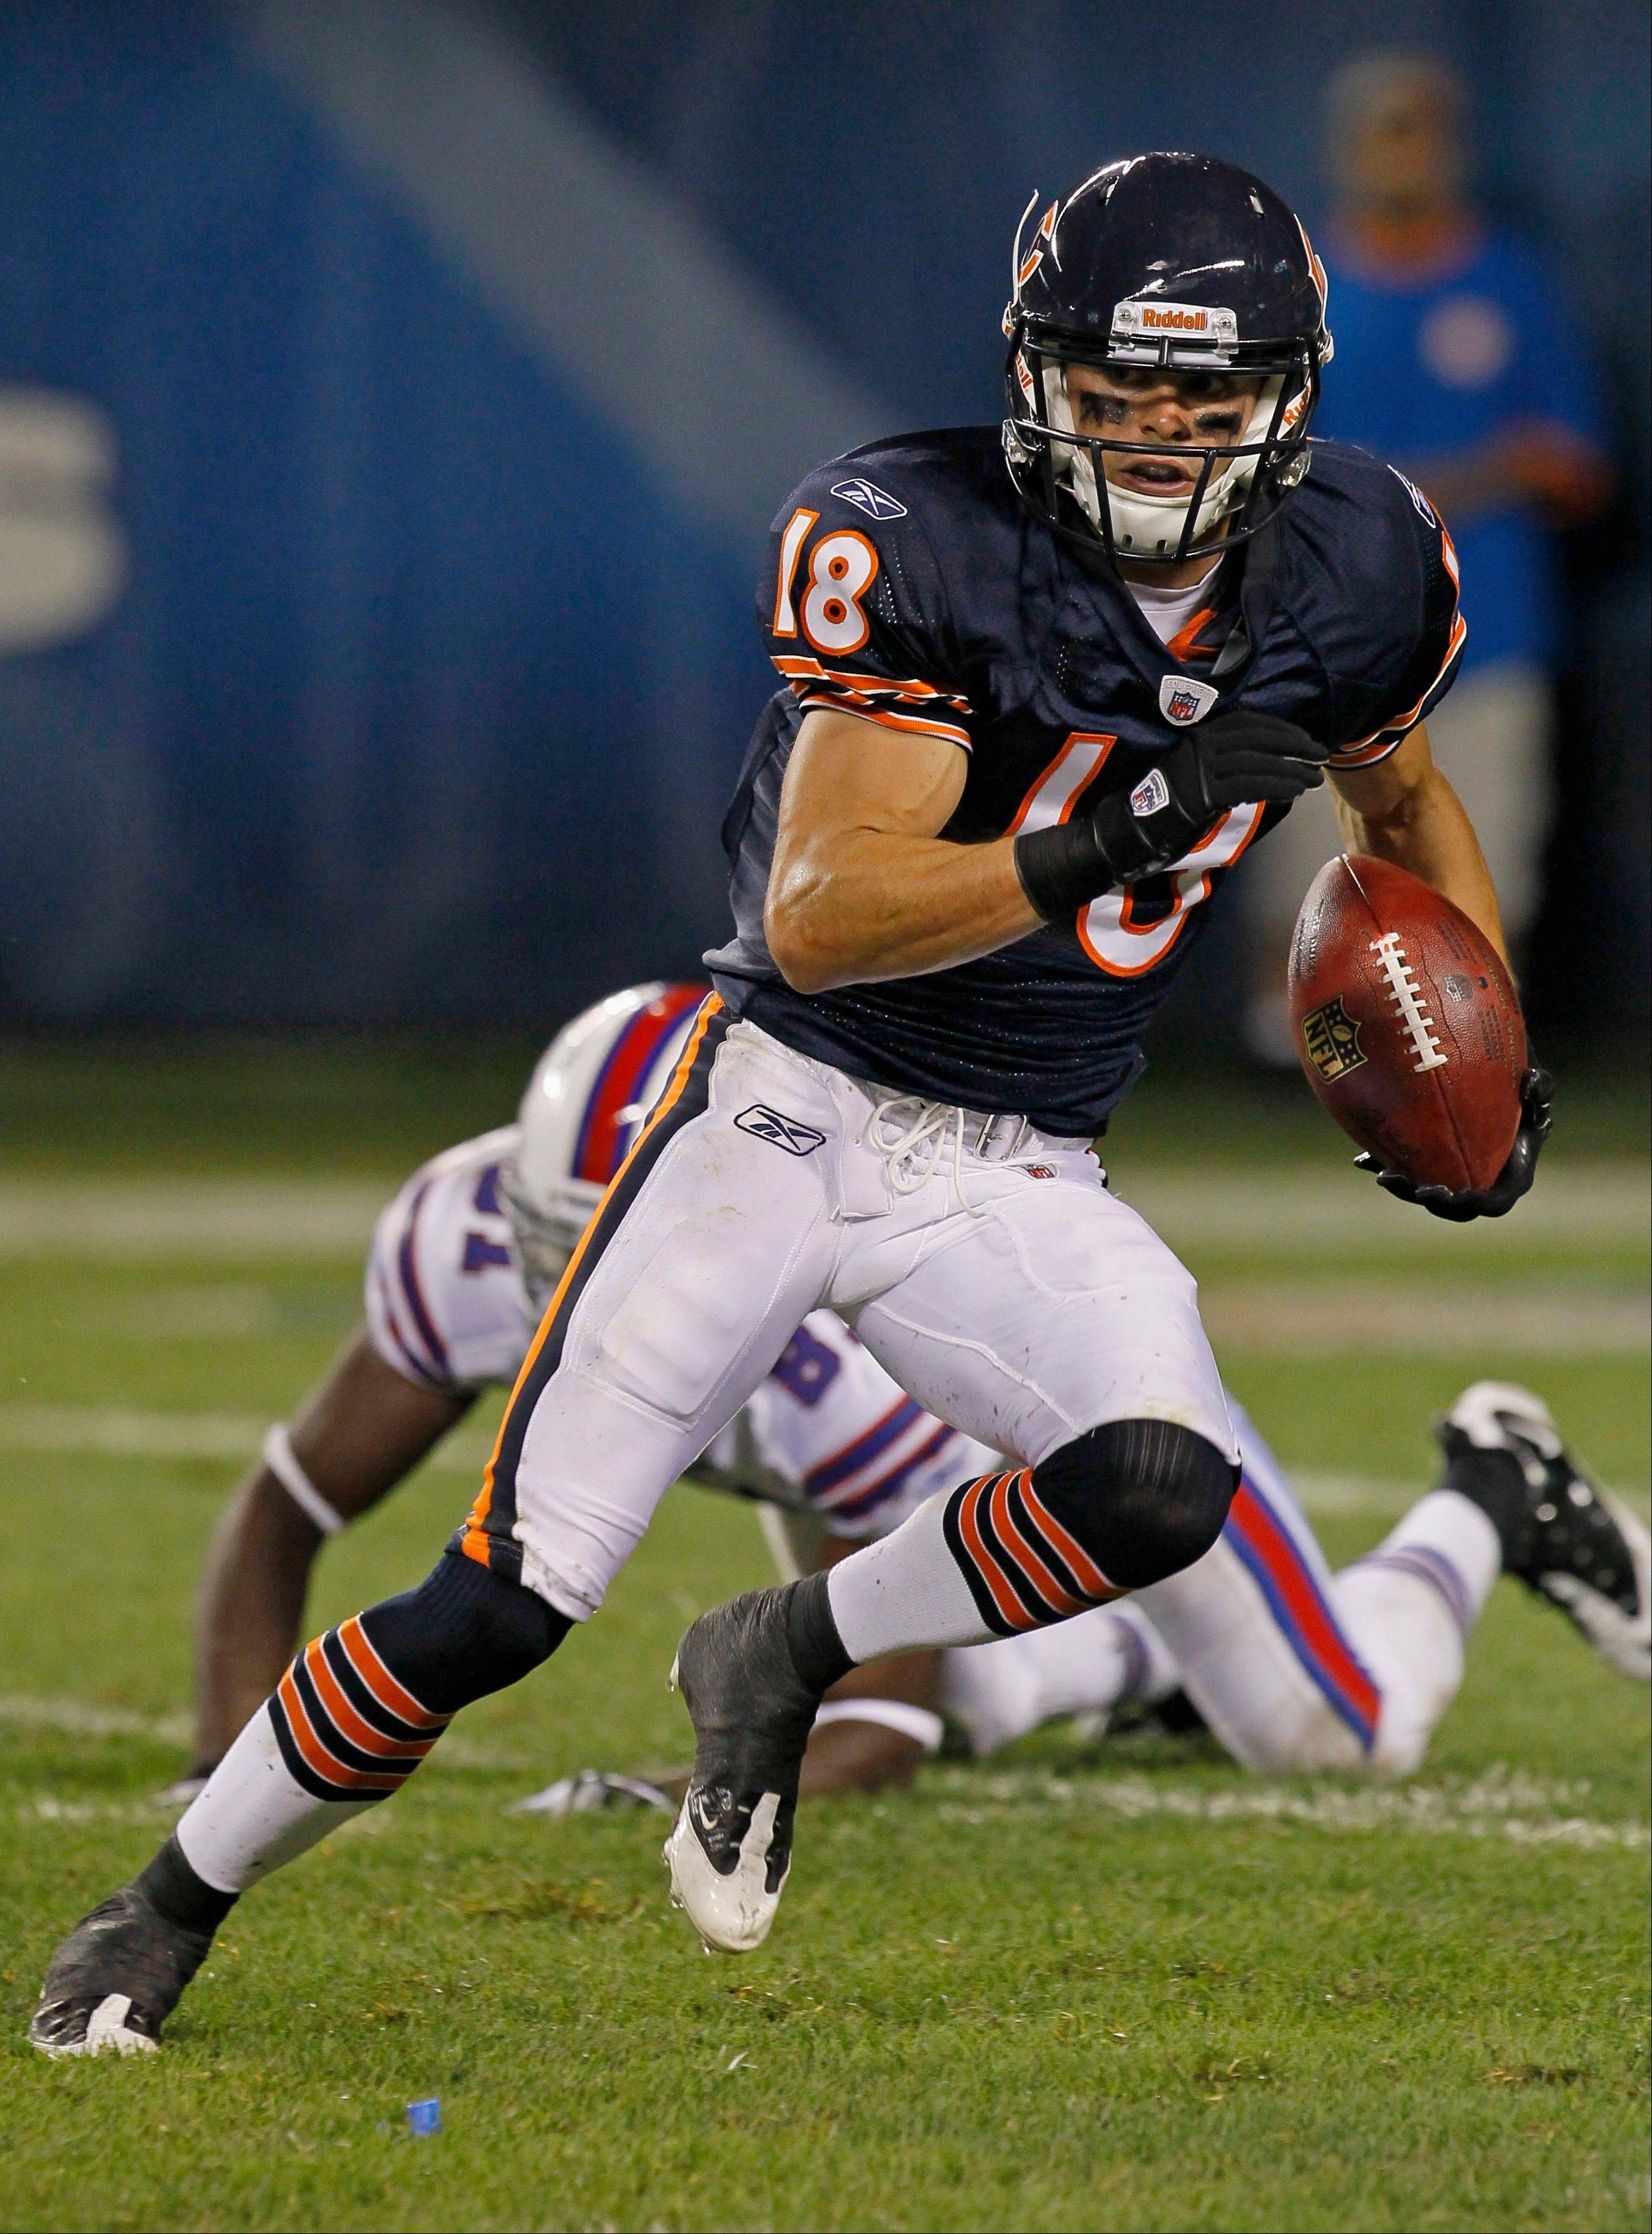 Undrafted rookie Dane Sanzenbacher made the roster as one of the Bears' six wide receivers.